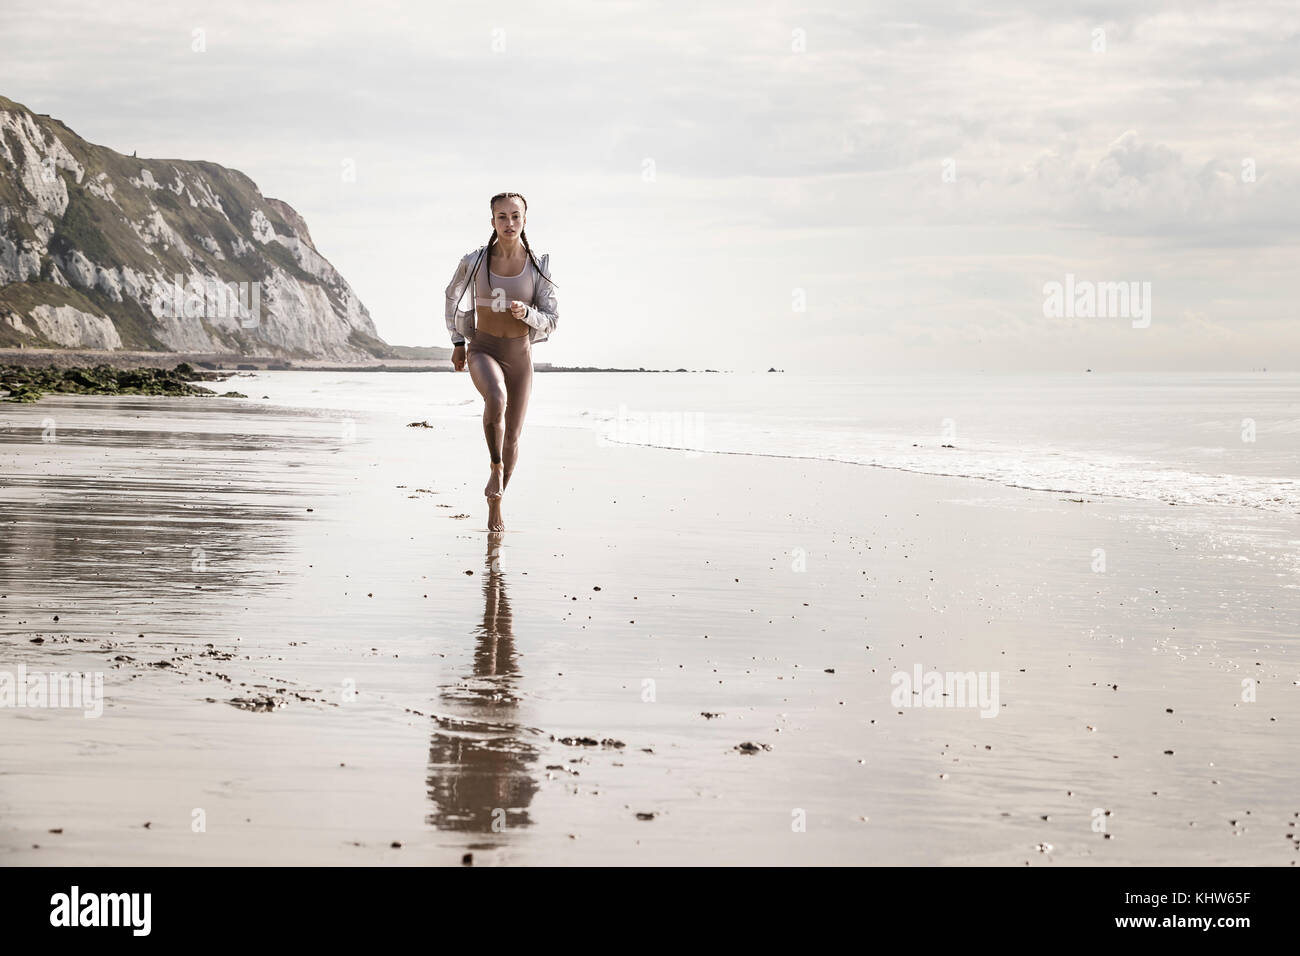 Front view of young female runner running barefoot along beach - Stock Image